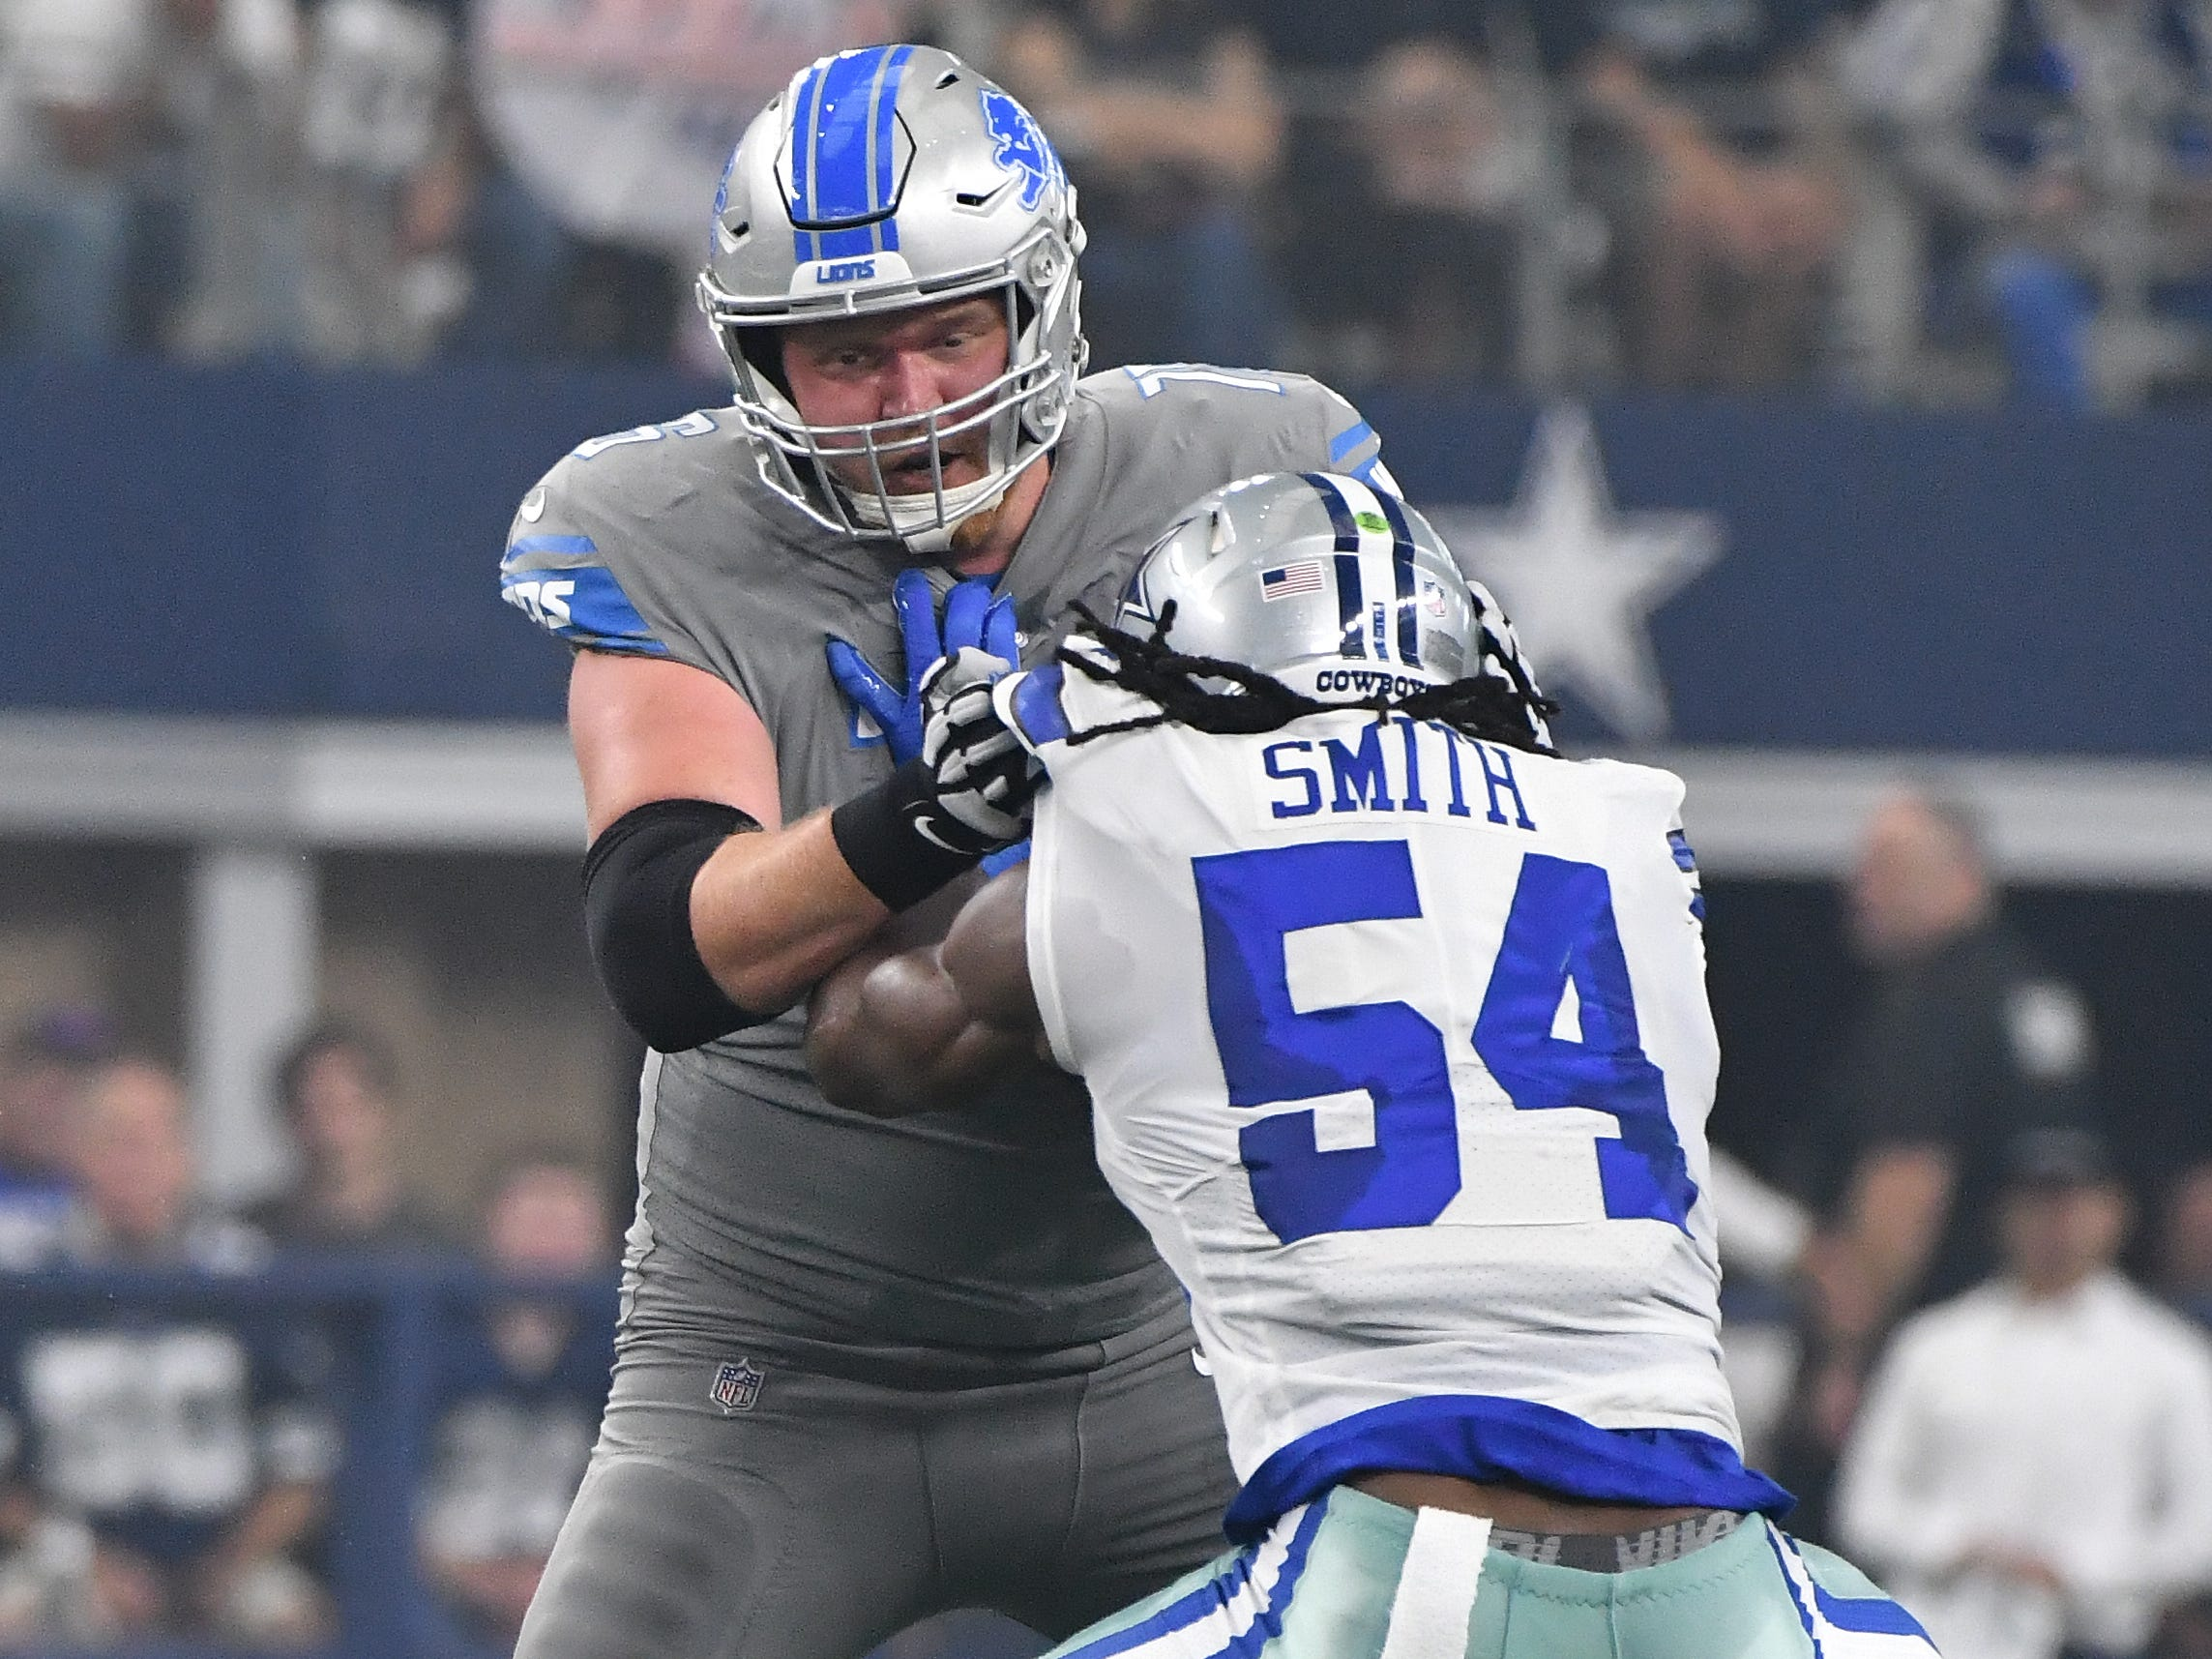 G T.J. Lang: When healthy, Lang has been excellent. He rarely allows pressure, shows expert timing when operating in tandem with Rick Wagner or Graham Glasgow, and can get to the second level more effectively than any of Detroit's linemen. But health continues to be a concern. He missed time with a concussion, while his back and hip have been nagging issues, forcing him into a rotation with Kenny Wiggins. Grade: B+